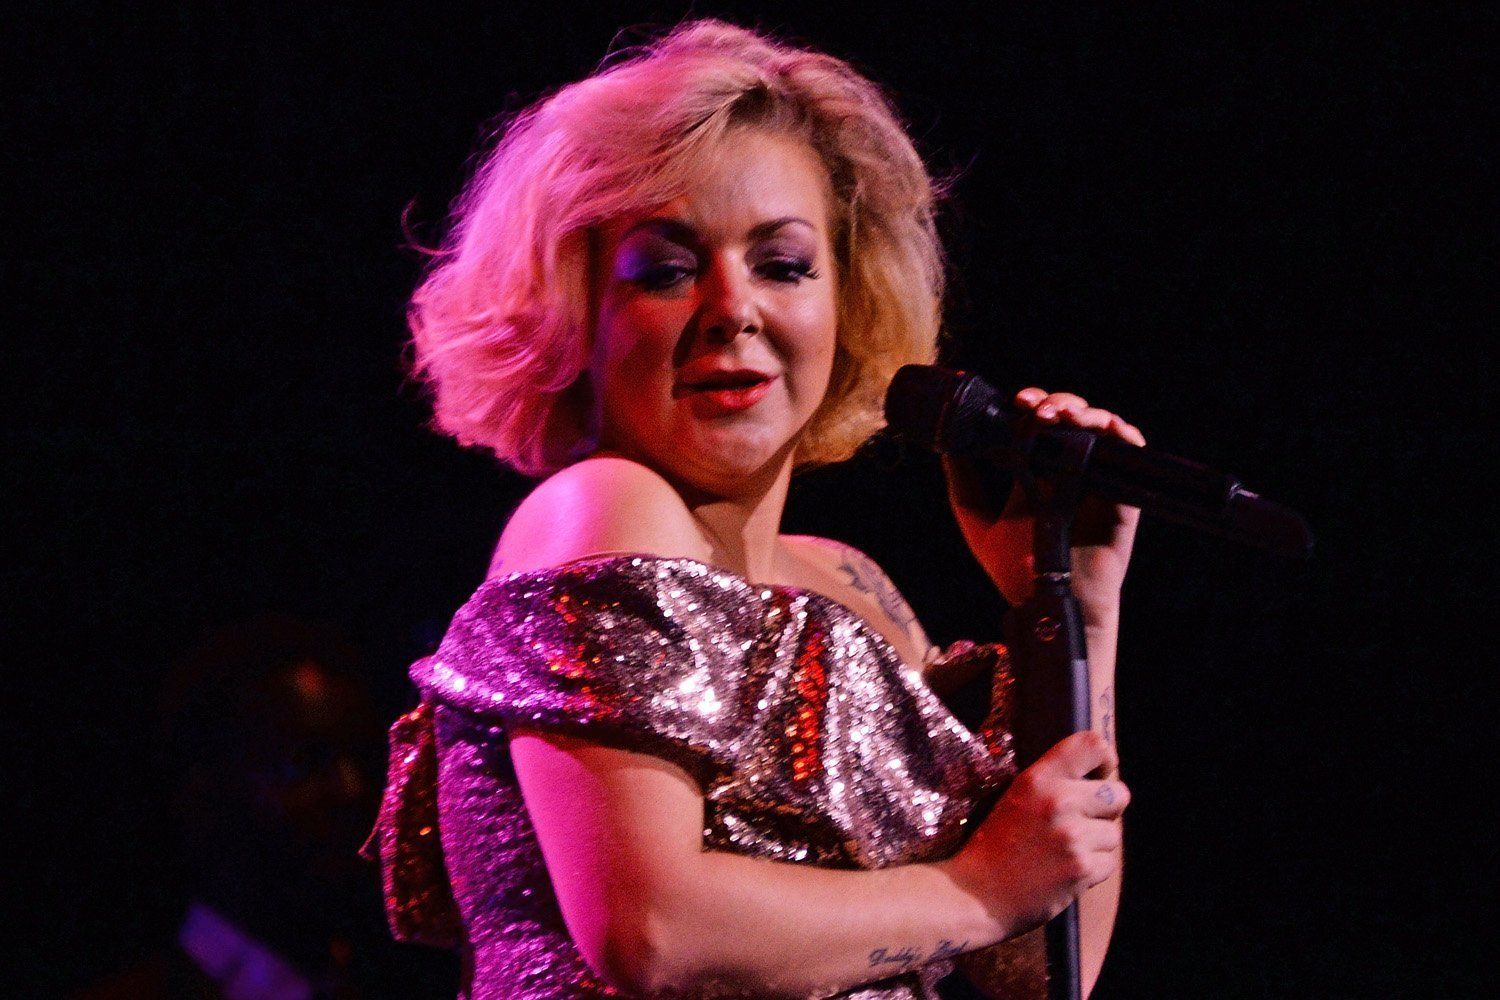 Sheridan Smith Opens Up About 'Massive Meltdown' Following Father's